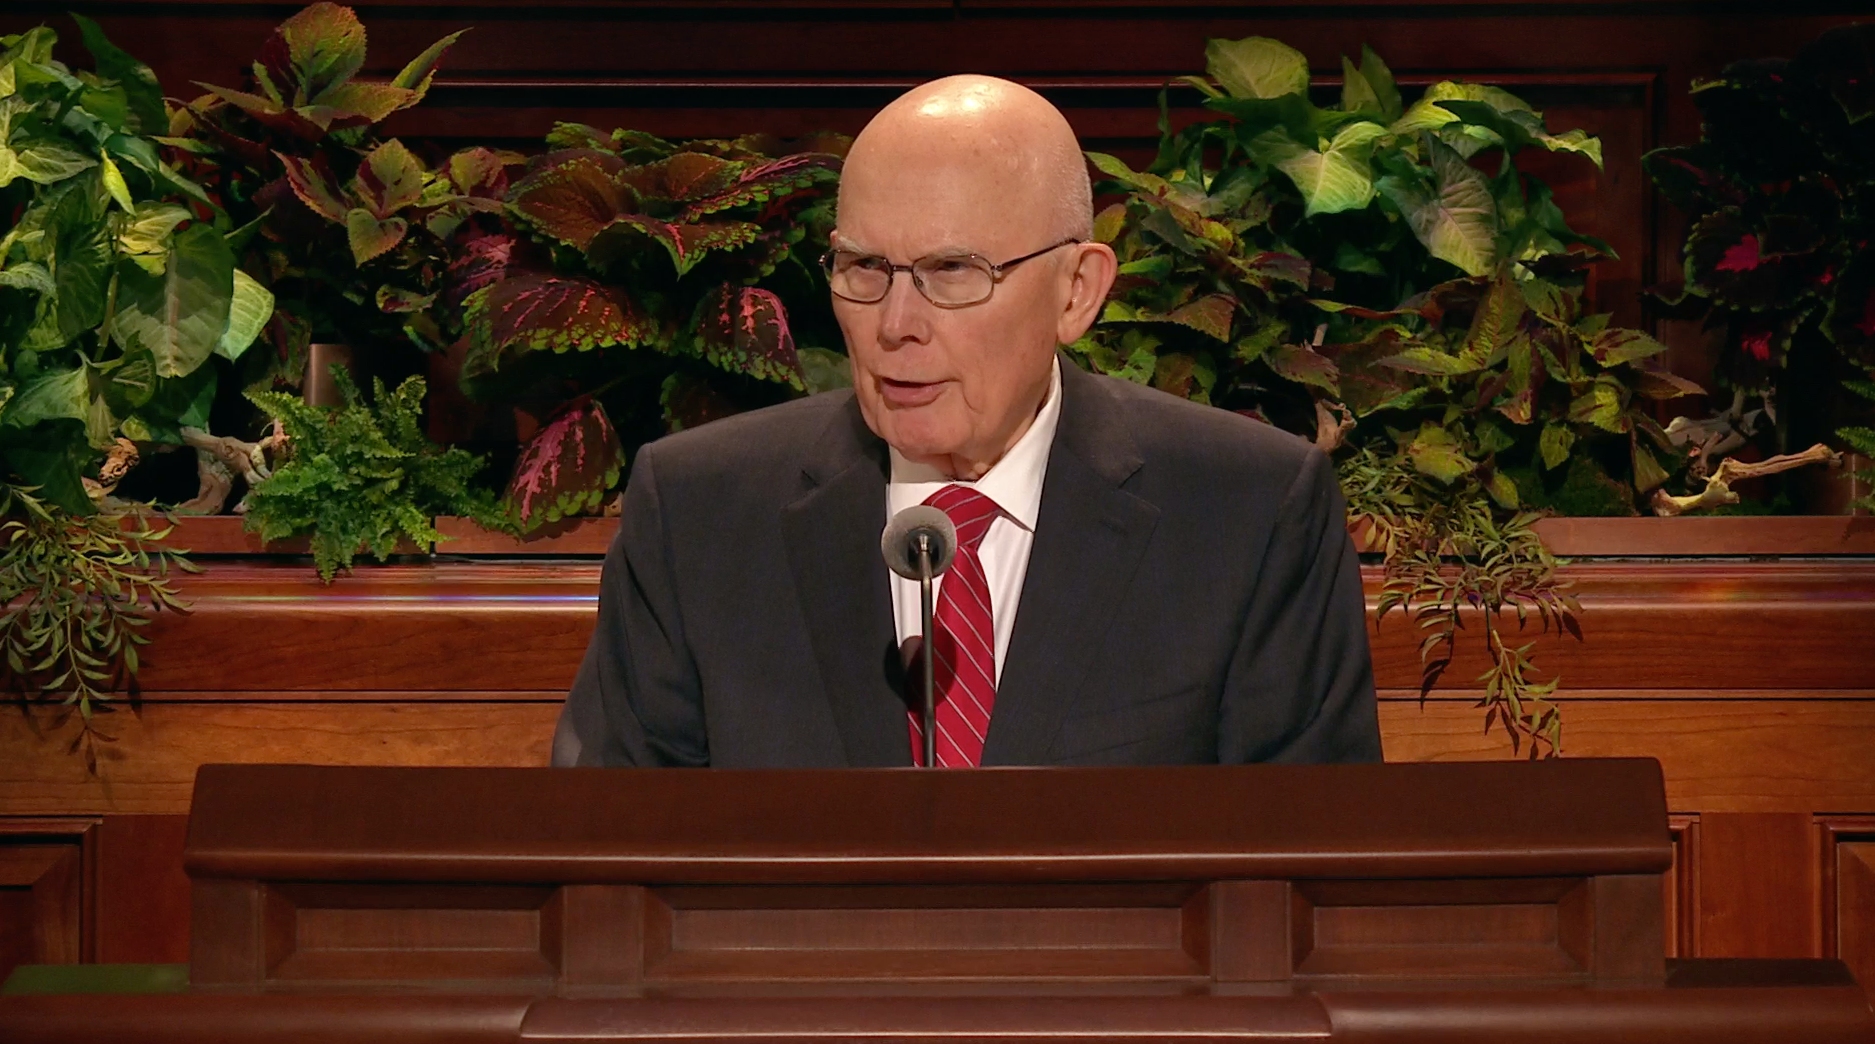 President Dallin H. Oaks, first counselor in the First Presidency, speaks during the general women's session in the 189th Semiannual General Conference of the Church on Oct. 5, 2019.